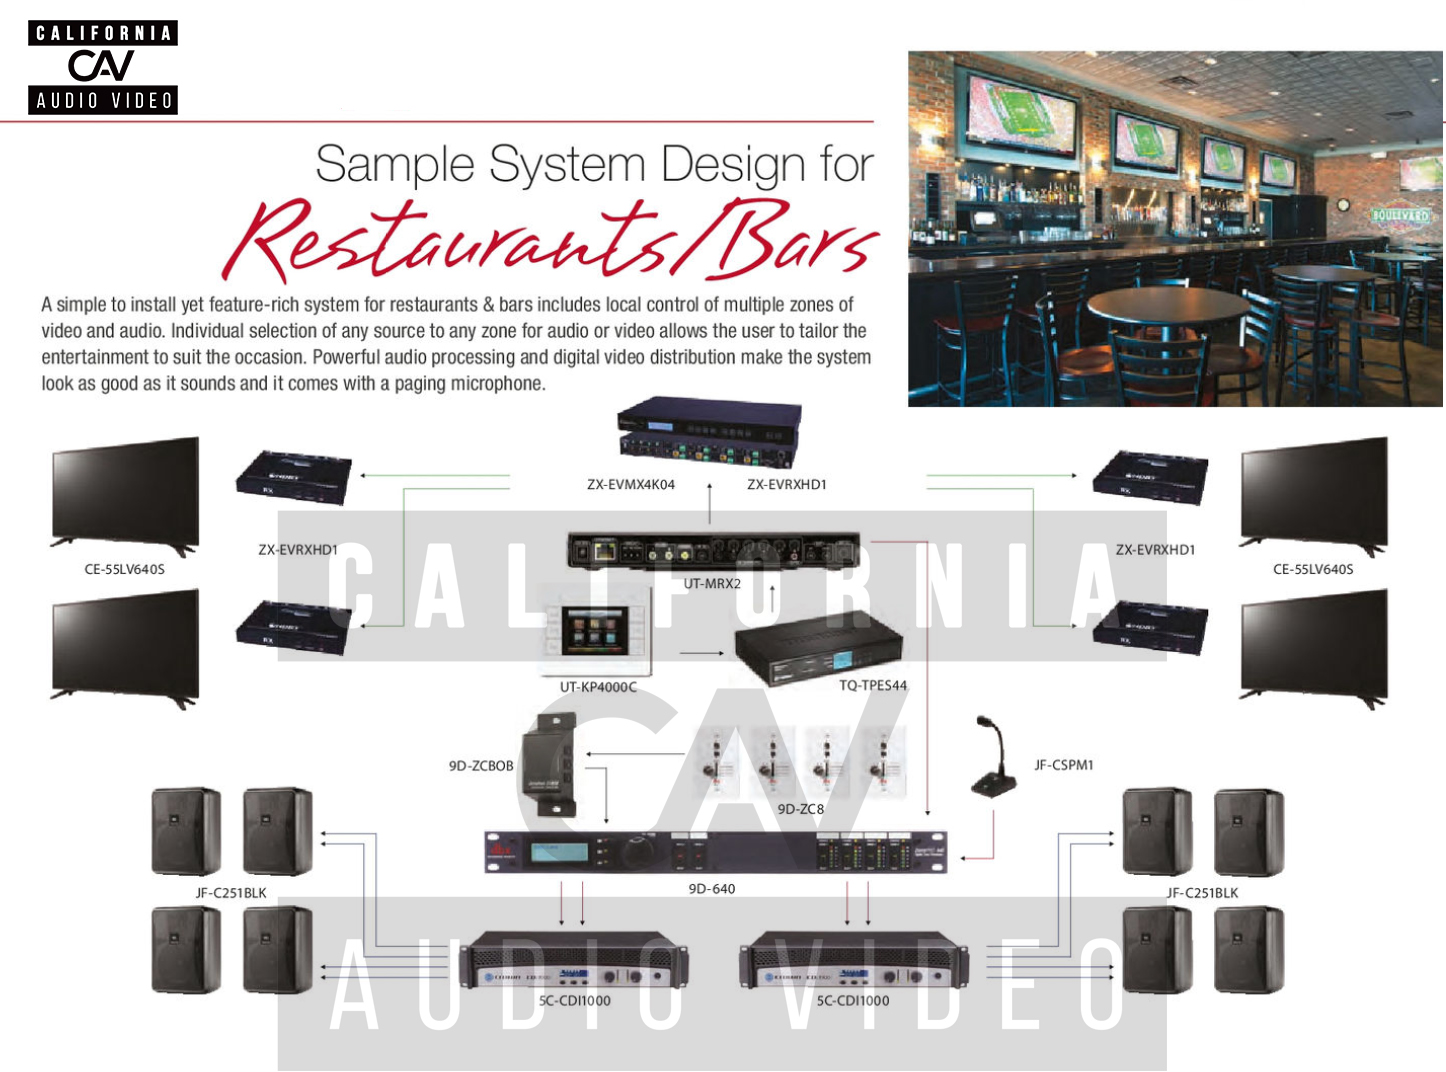 Commercial Audio Video Installation Services Restaurant